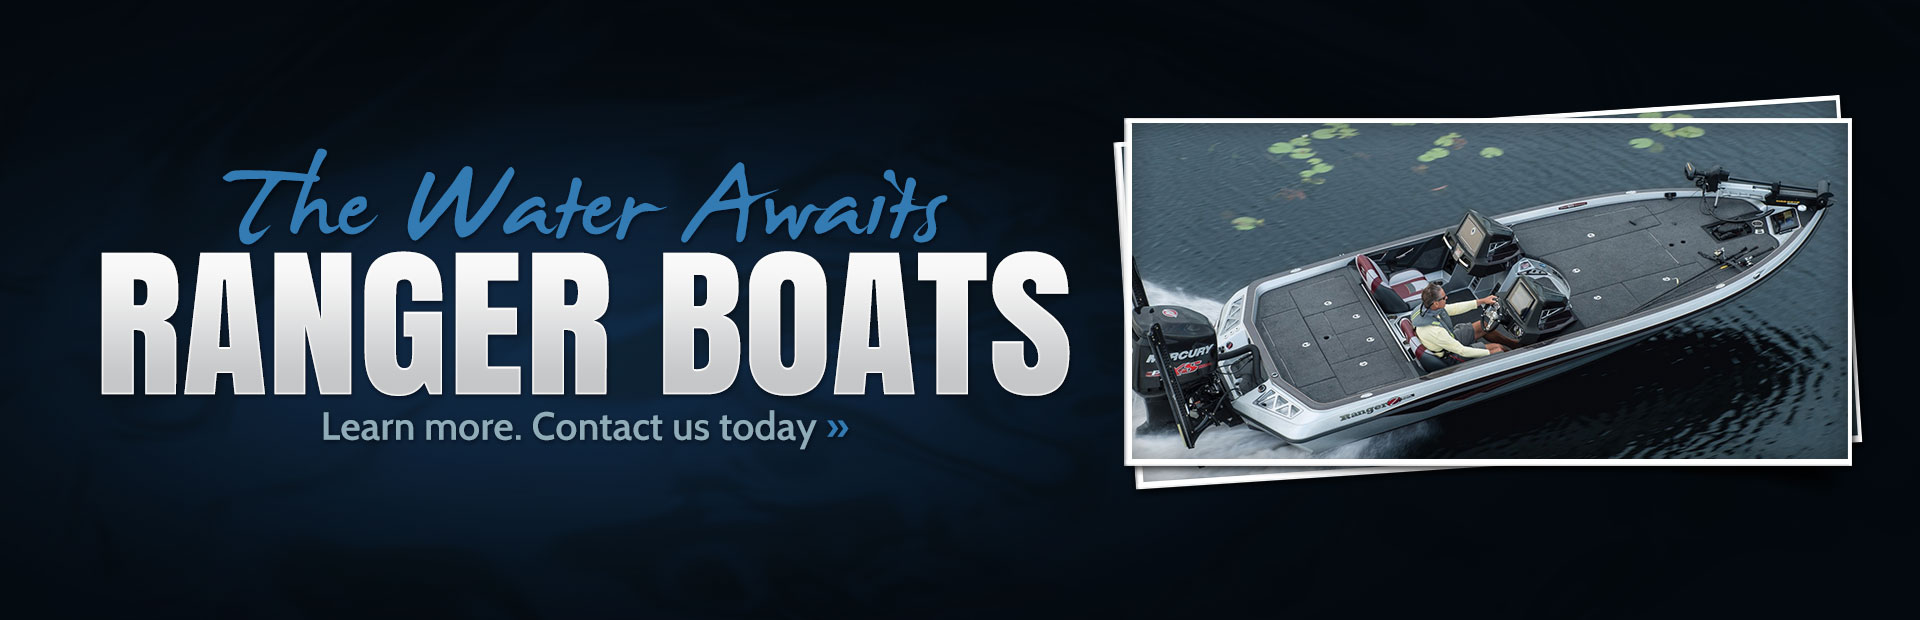 Click here to contact us about Ranger boats.